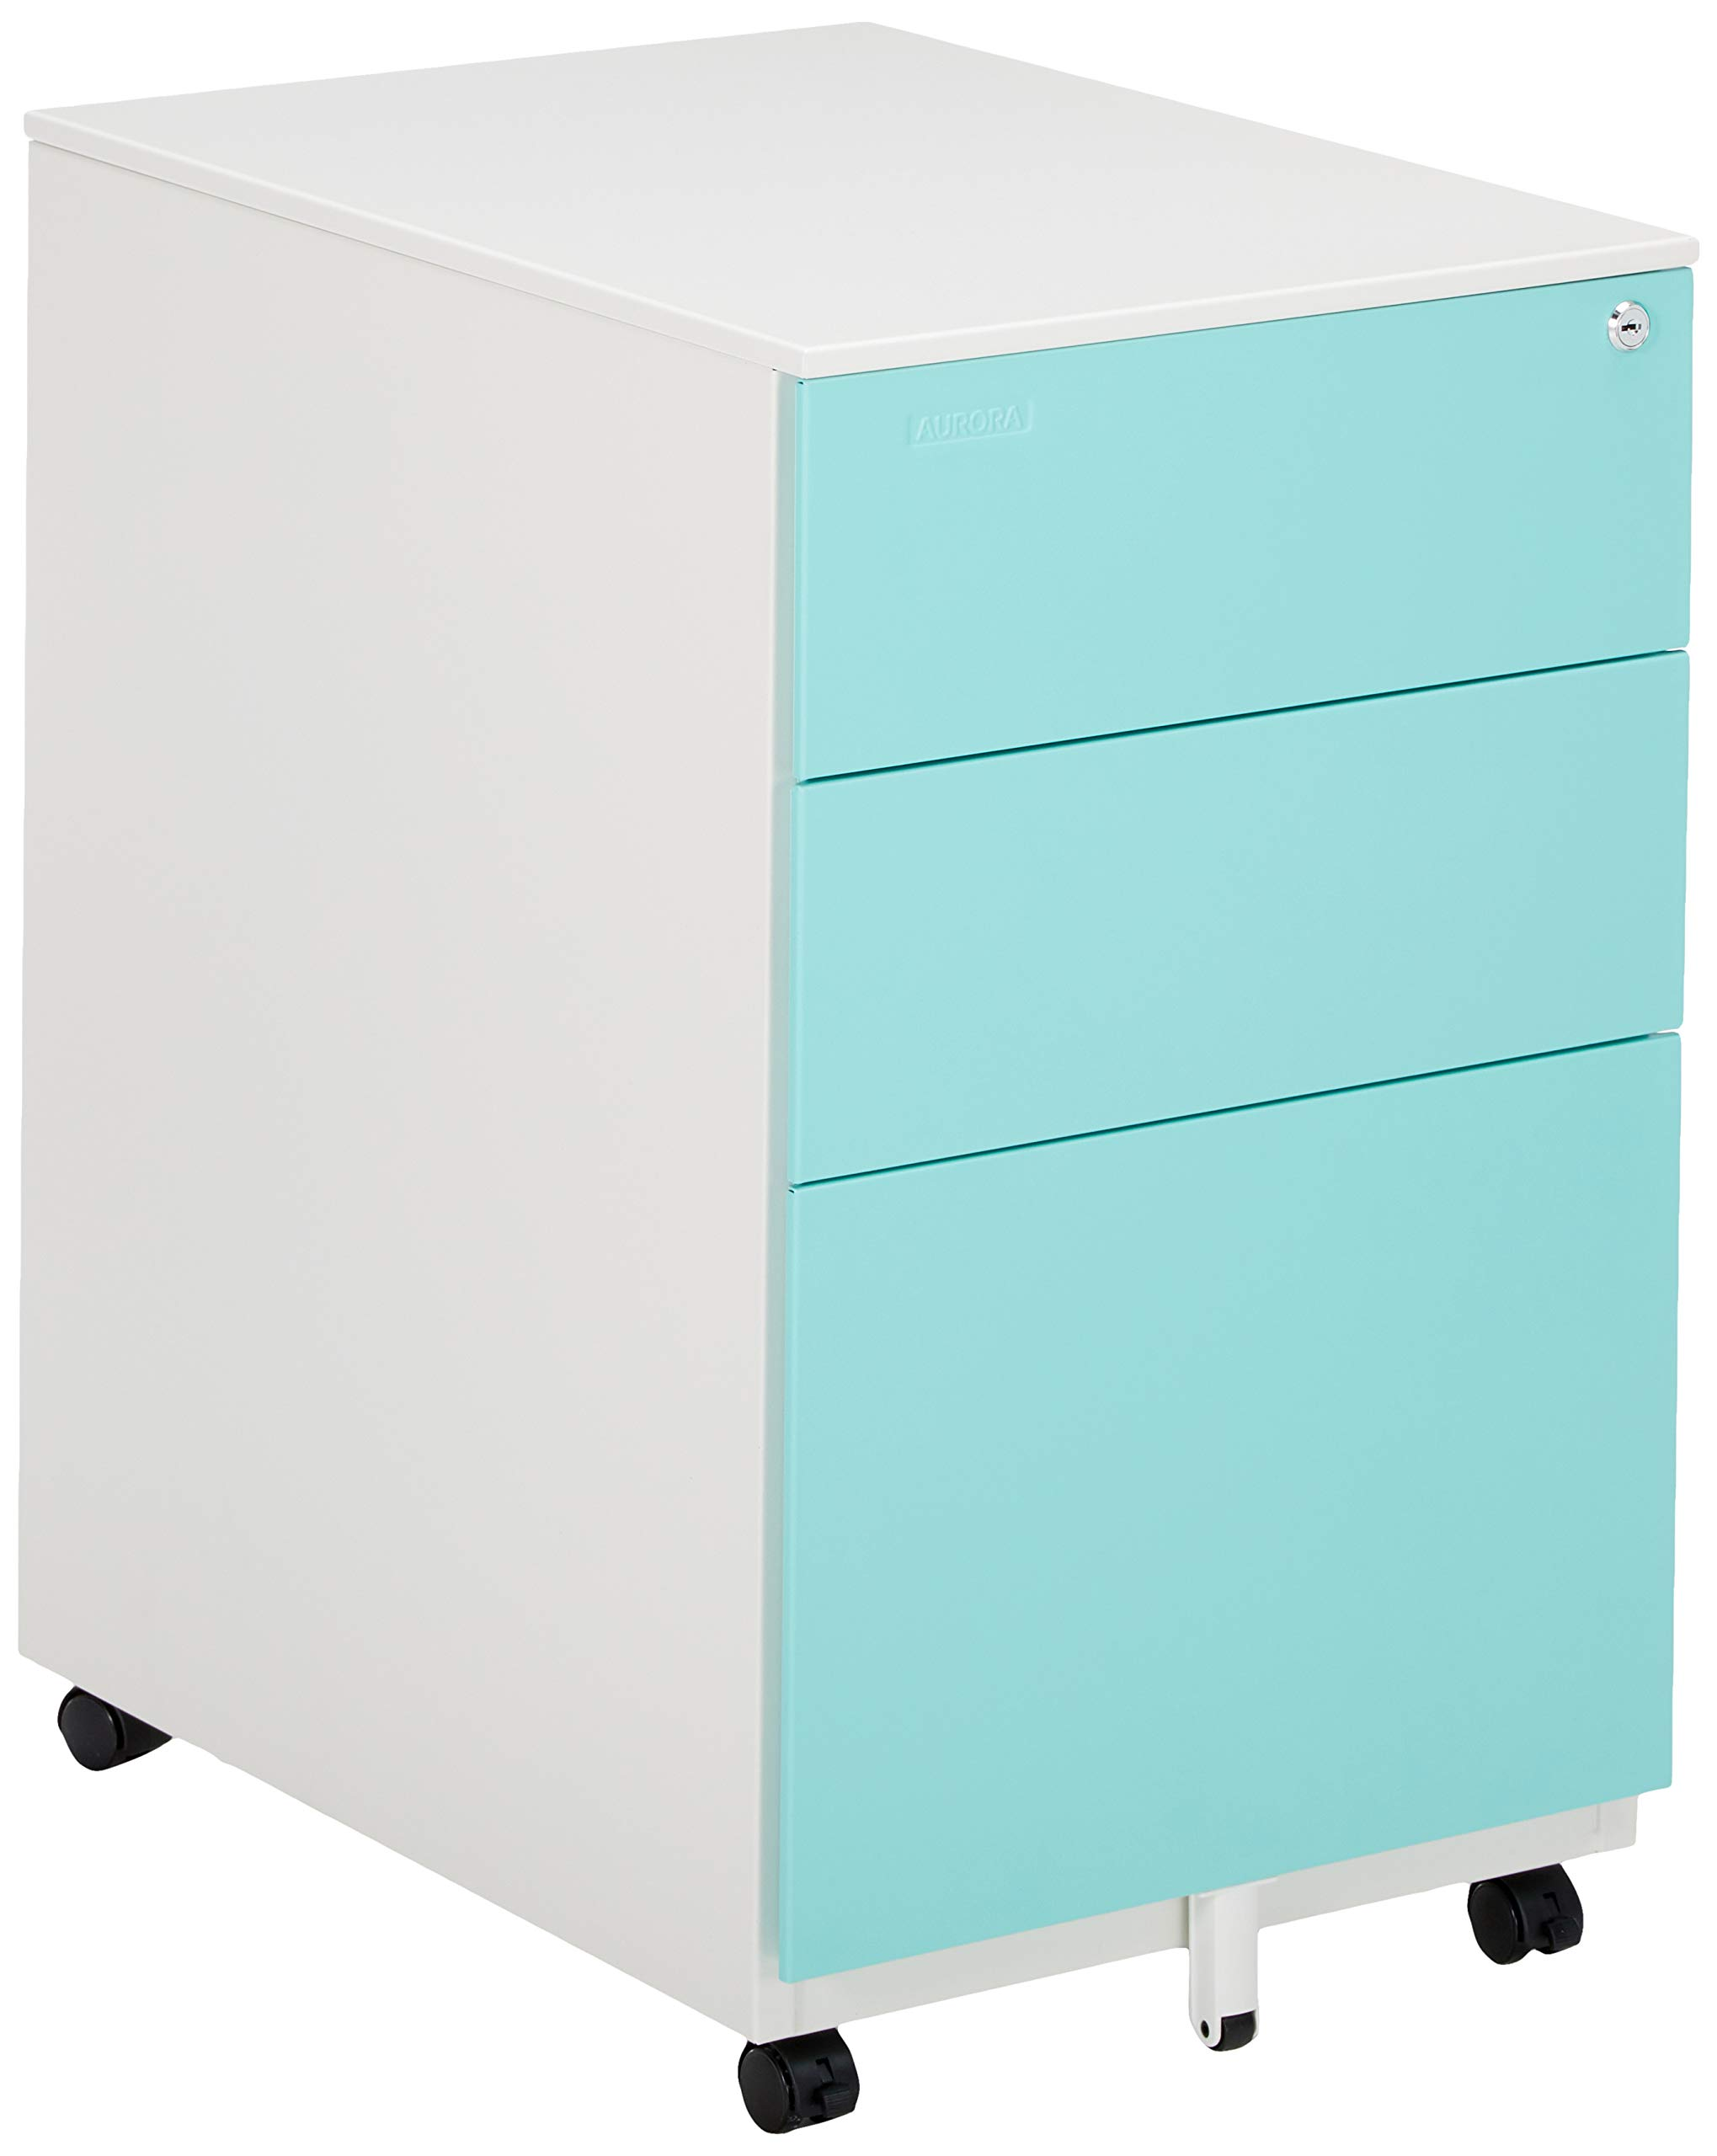 Aurora FC-103BL Fully Assembled Modern Soho Design 3-Drawer Metal Mobile File Cabinet with Lock Key, White/Aqua Blue by AURORA